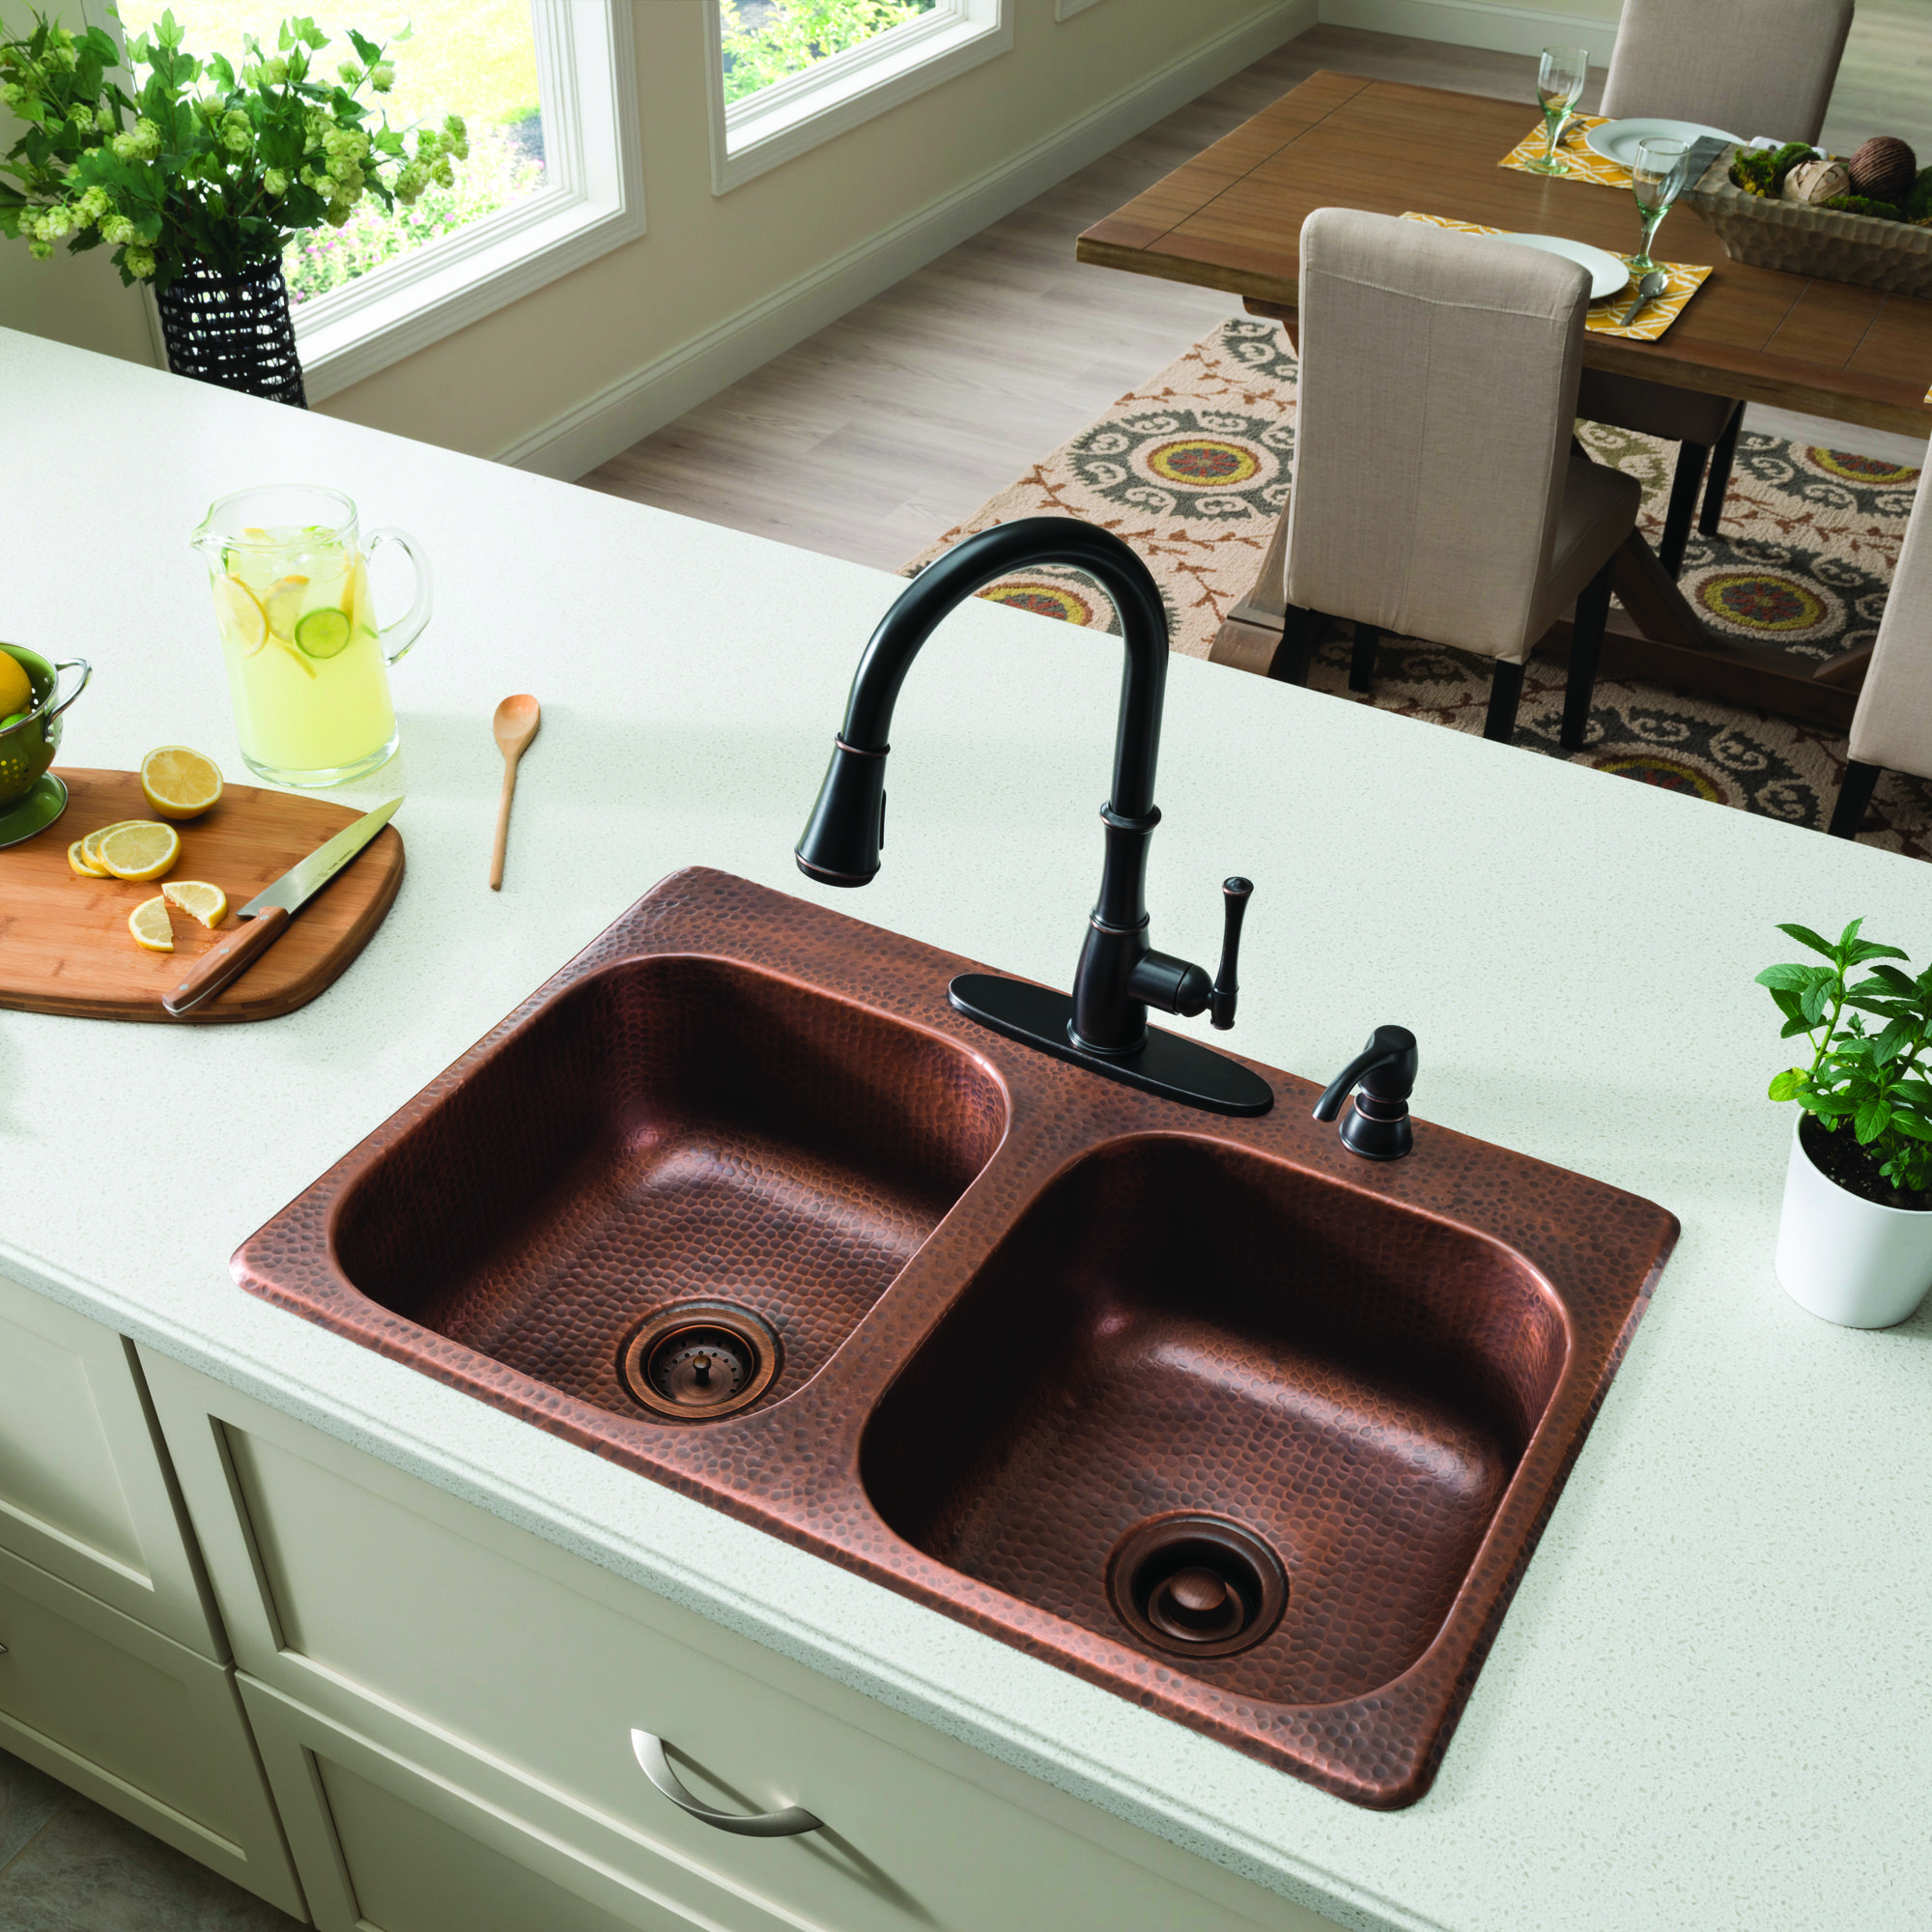 Replace your old boring kitchen sink with a SINKOLOGY™ Drop In